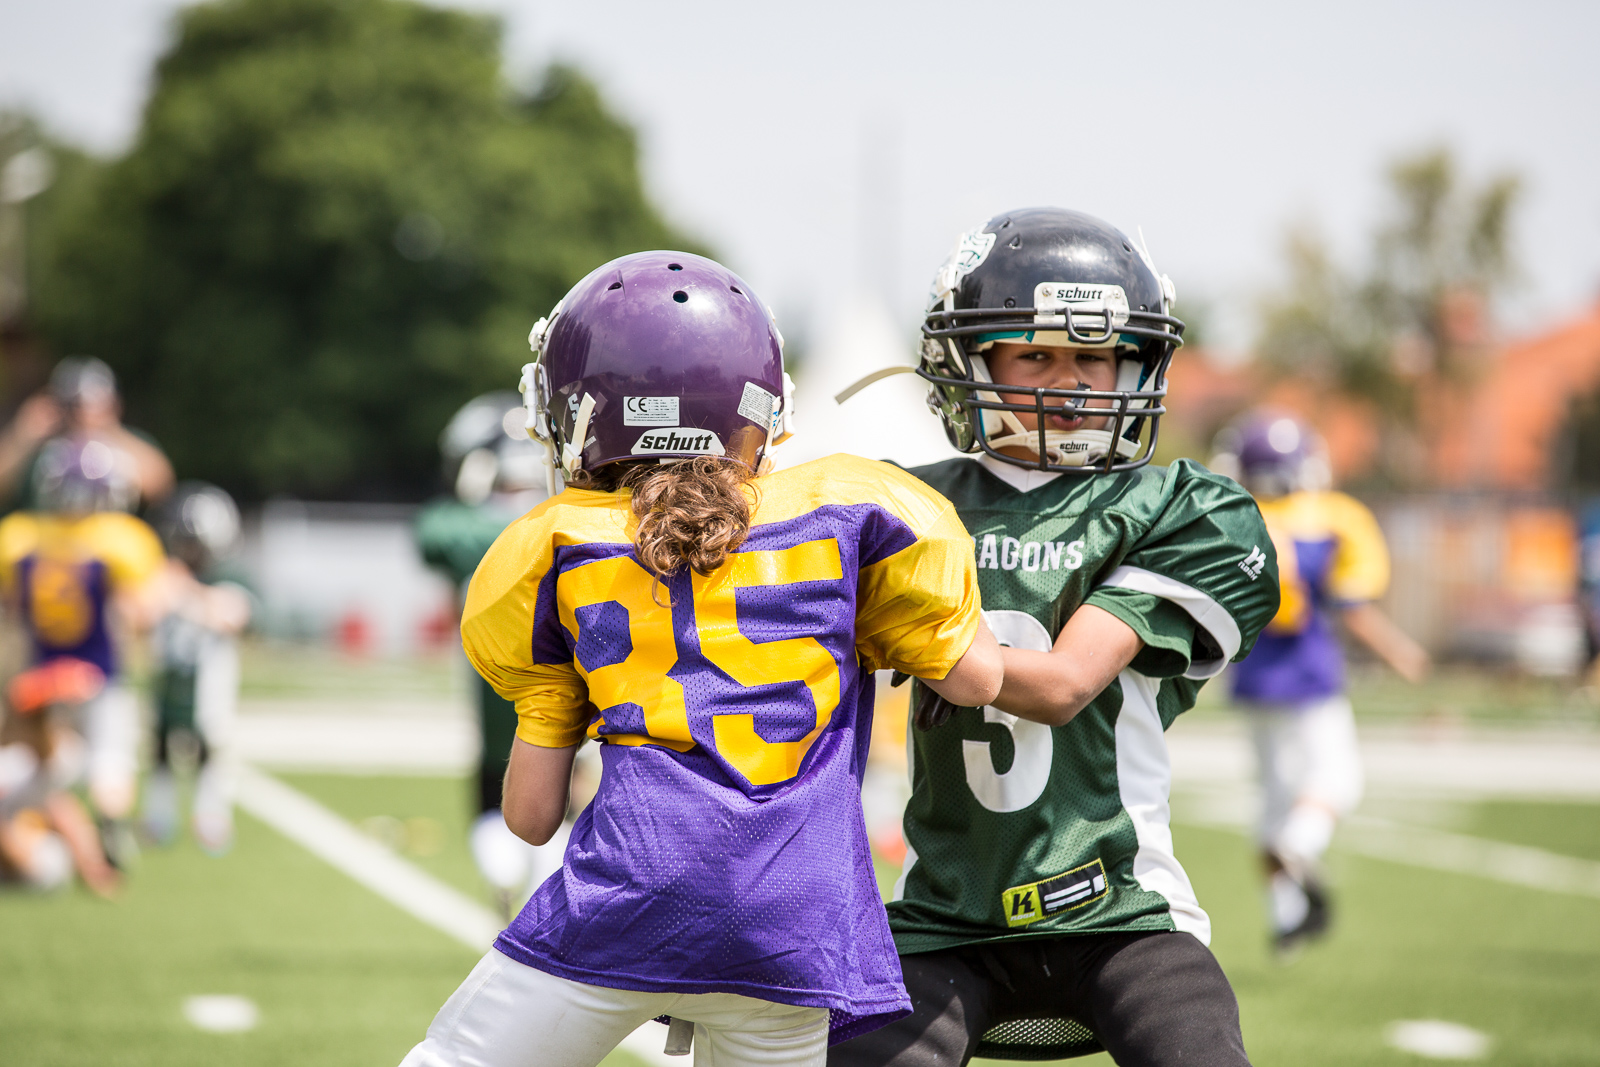 Raiffeisen Vikings vs Danube Dragons U11